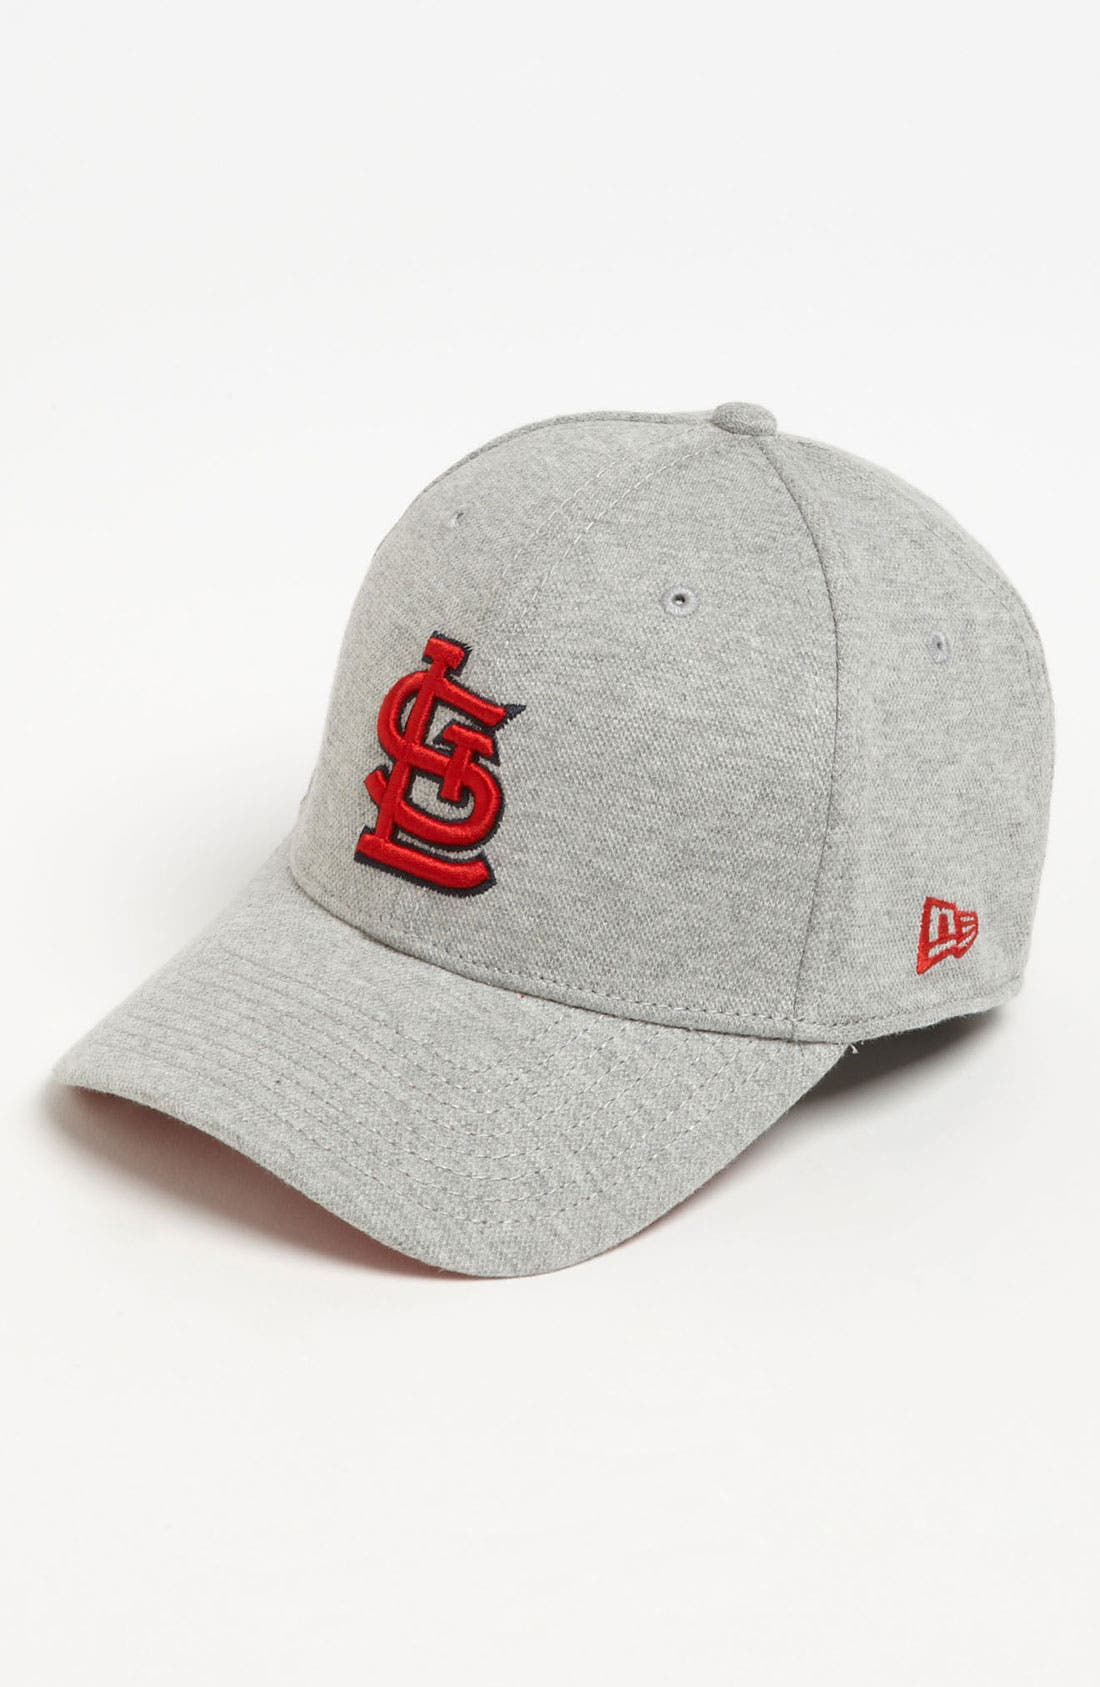 Alternate Image 1 Selected - New Era Cap 'Spring Stretch - St. Louis Cardinals' Baseball Cap